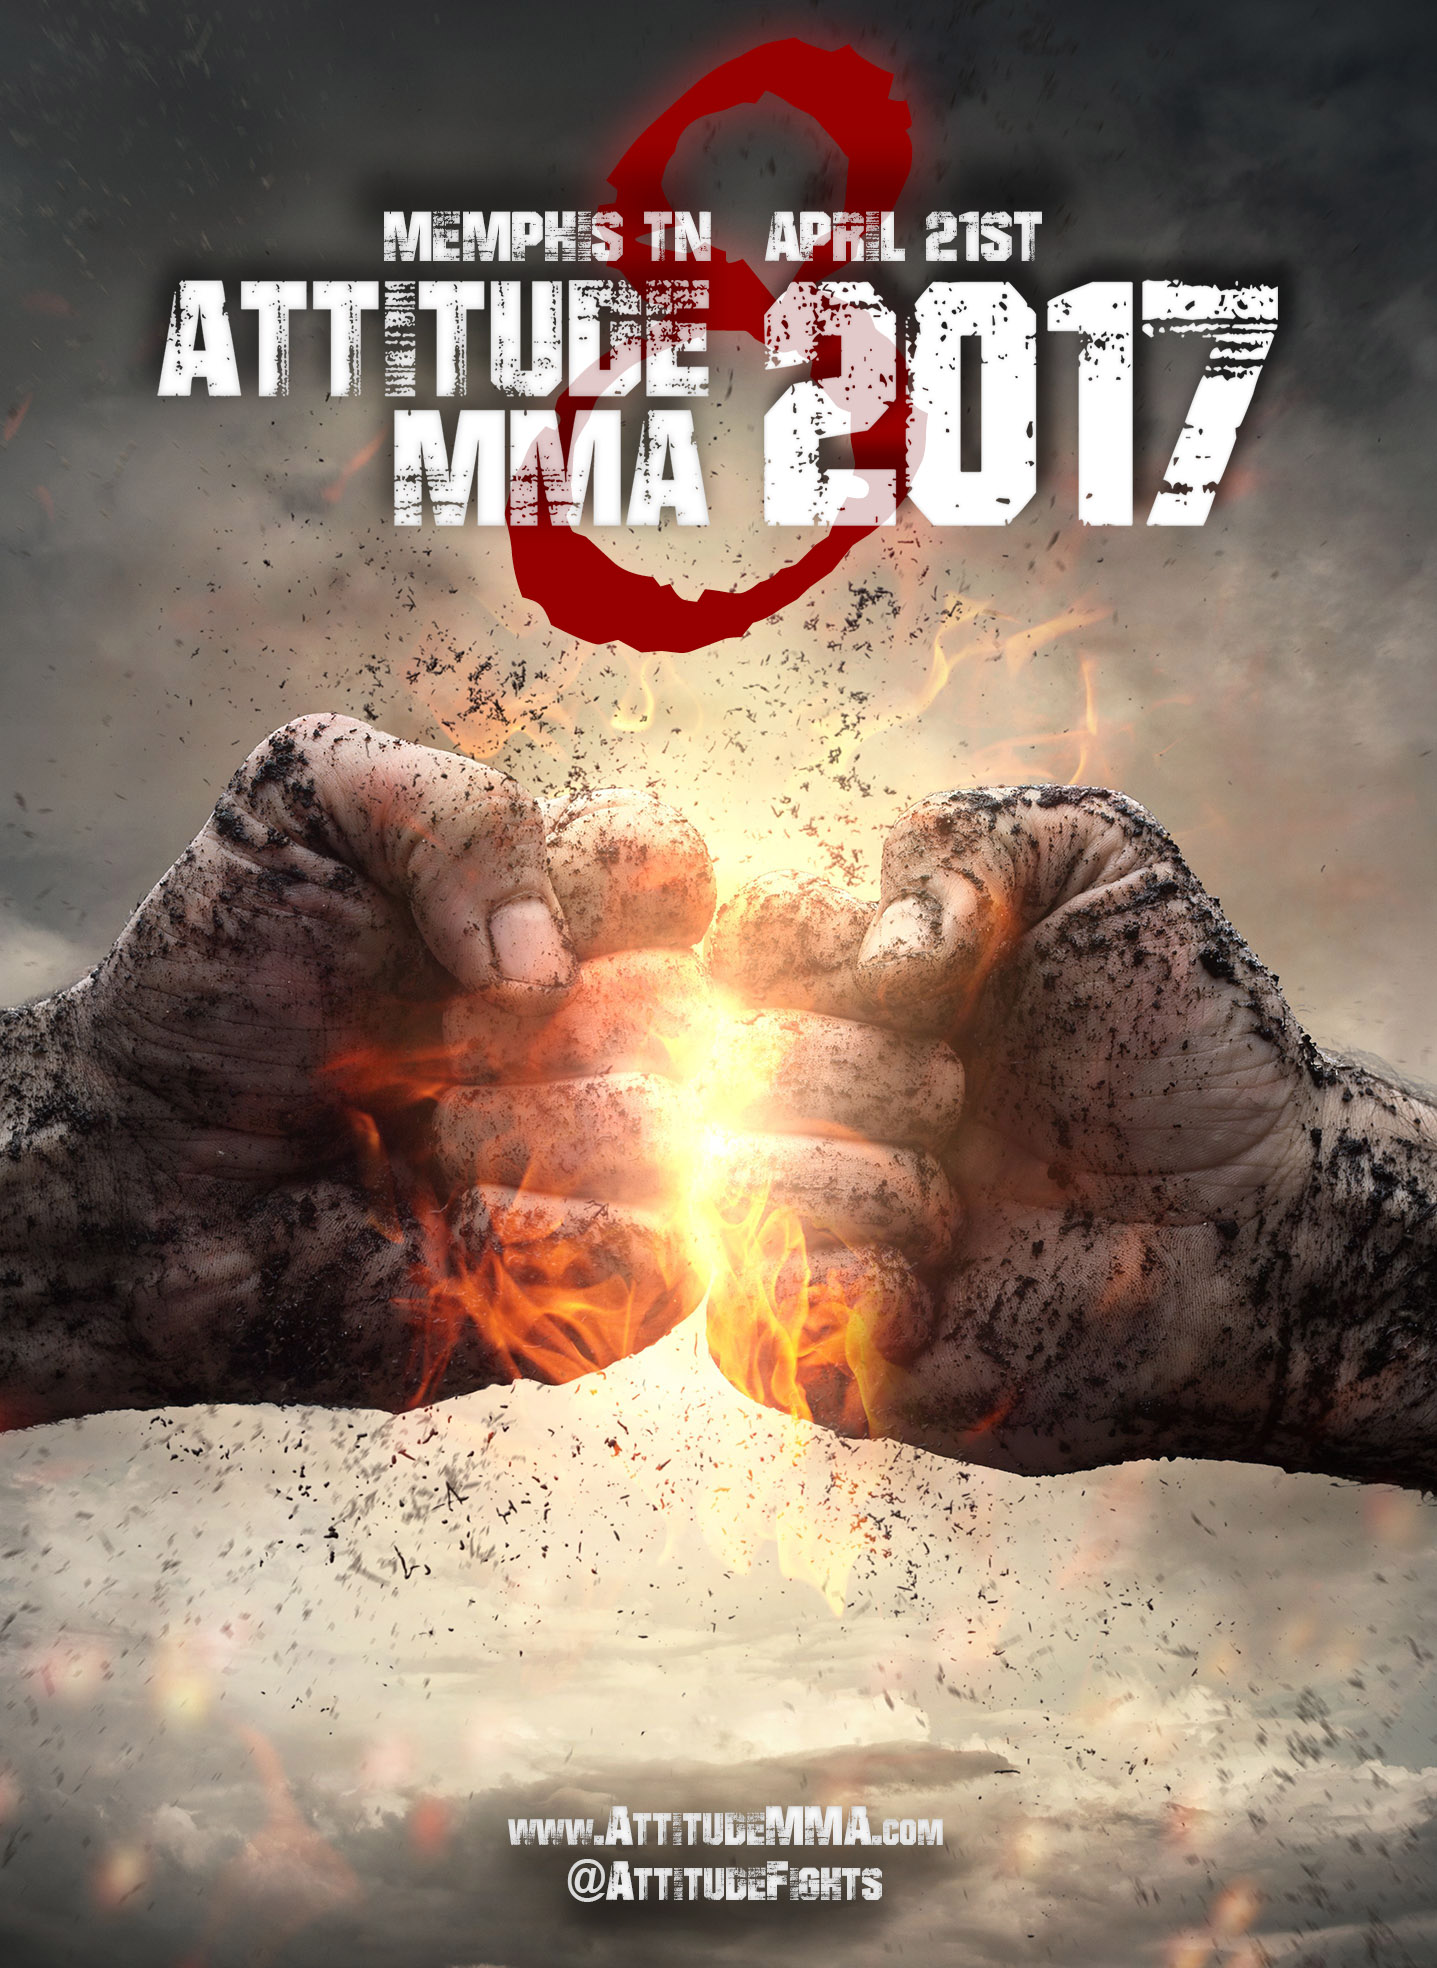 Attitude MMA Fights 8 - mixed martial arts event on april 21st in Memphis TN